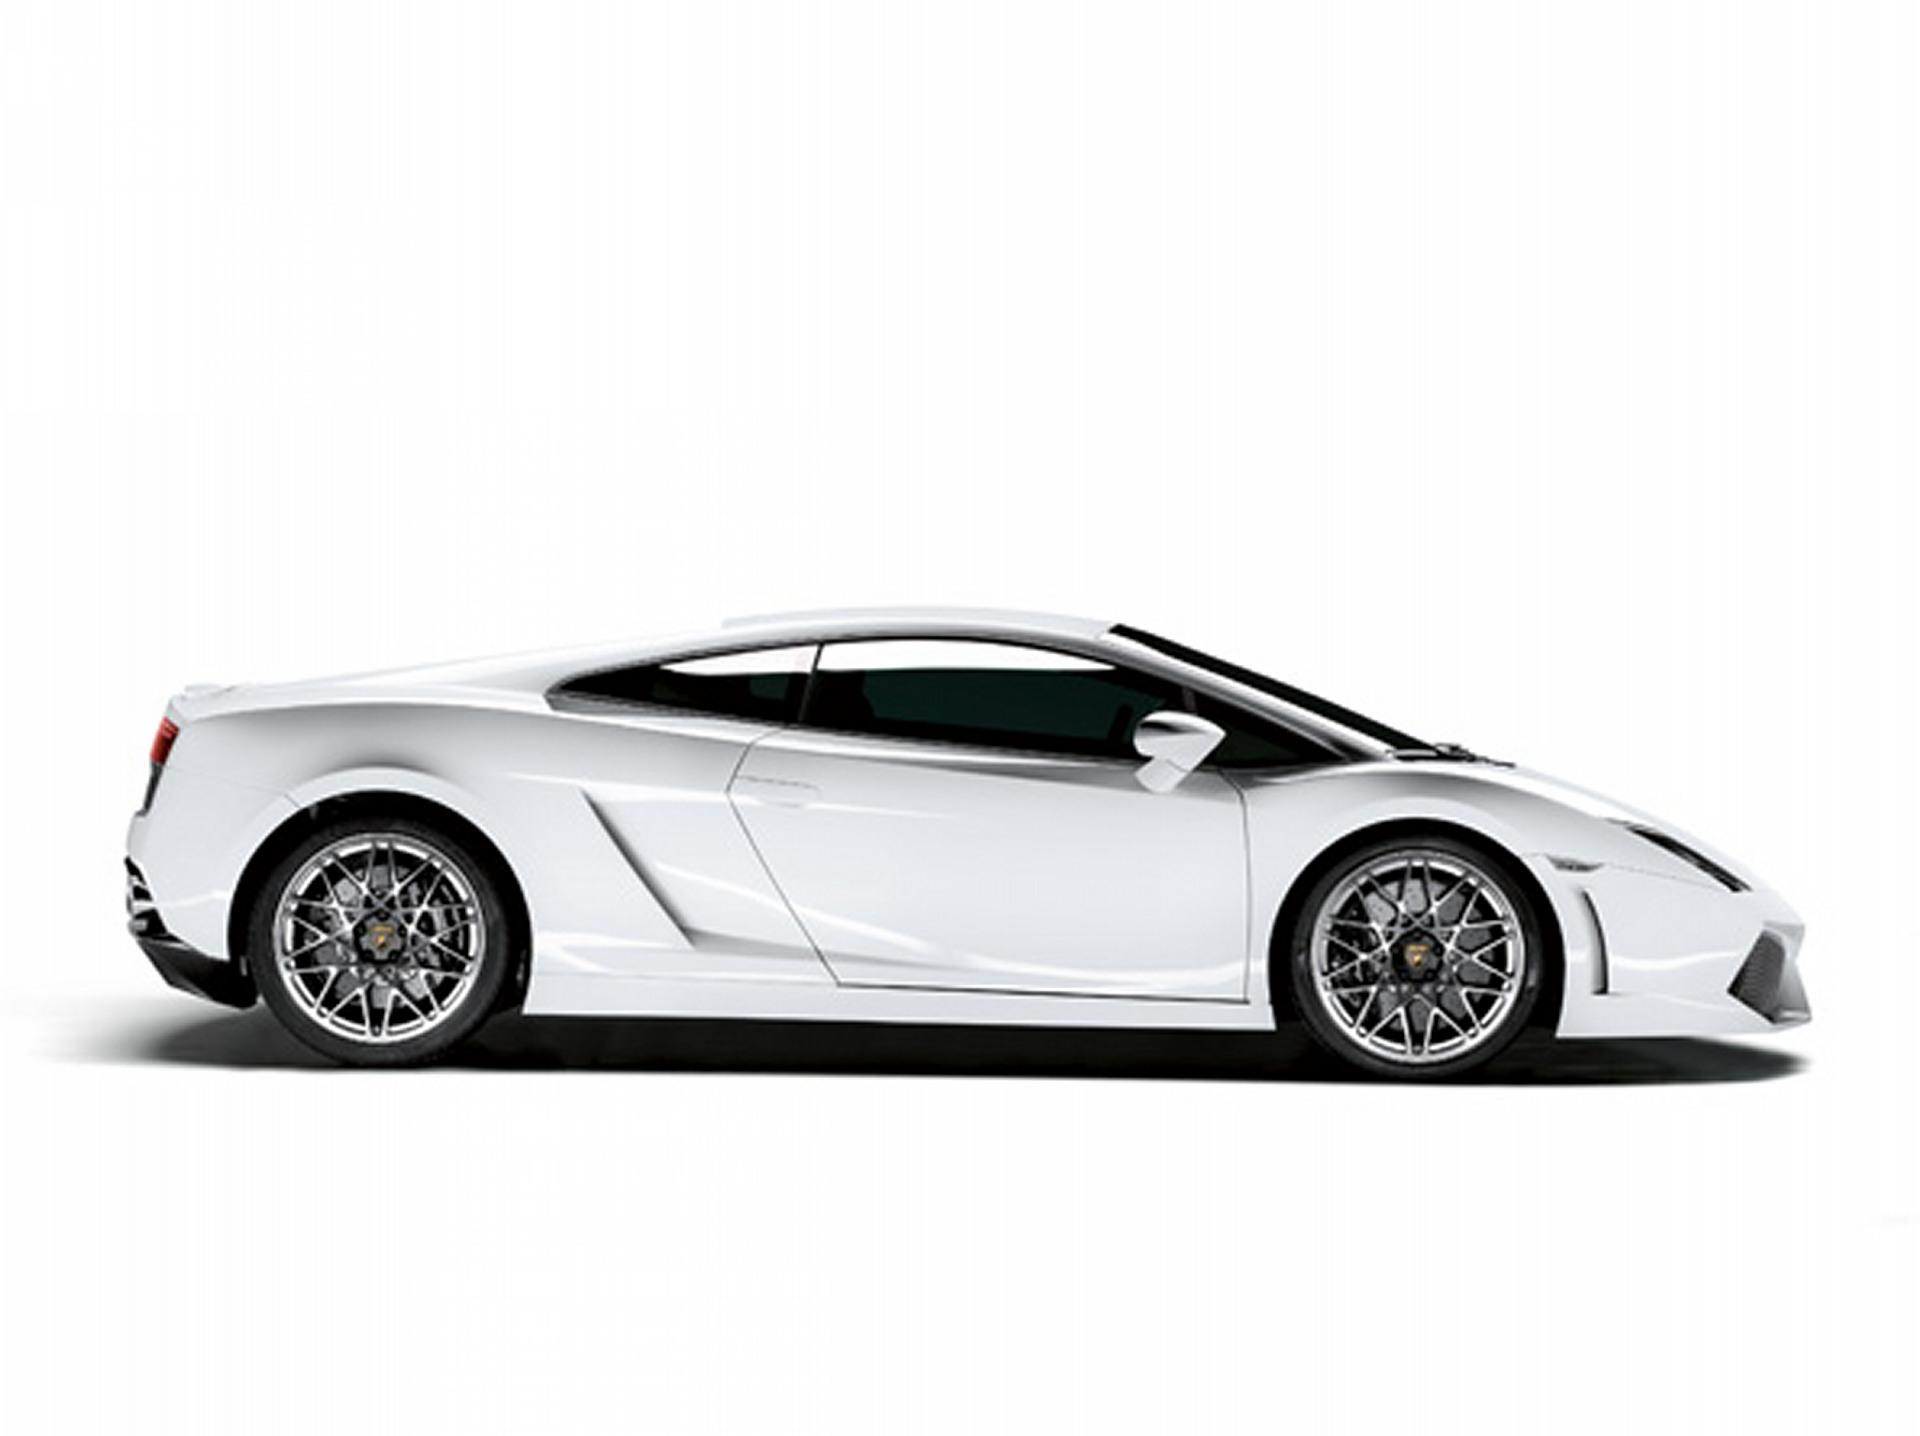 2011 Lamborghini Gallardo LP560 4 News And Information   Conceptcarz.com